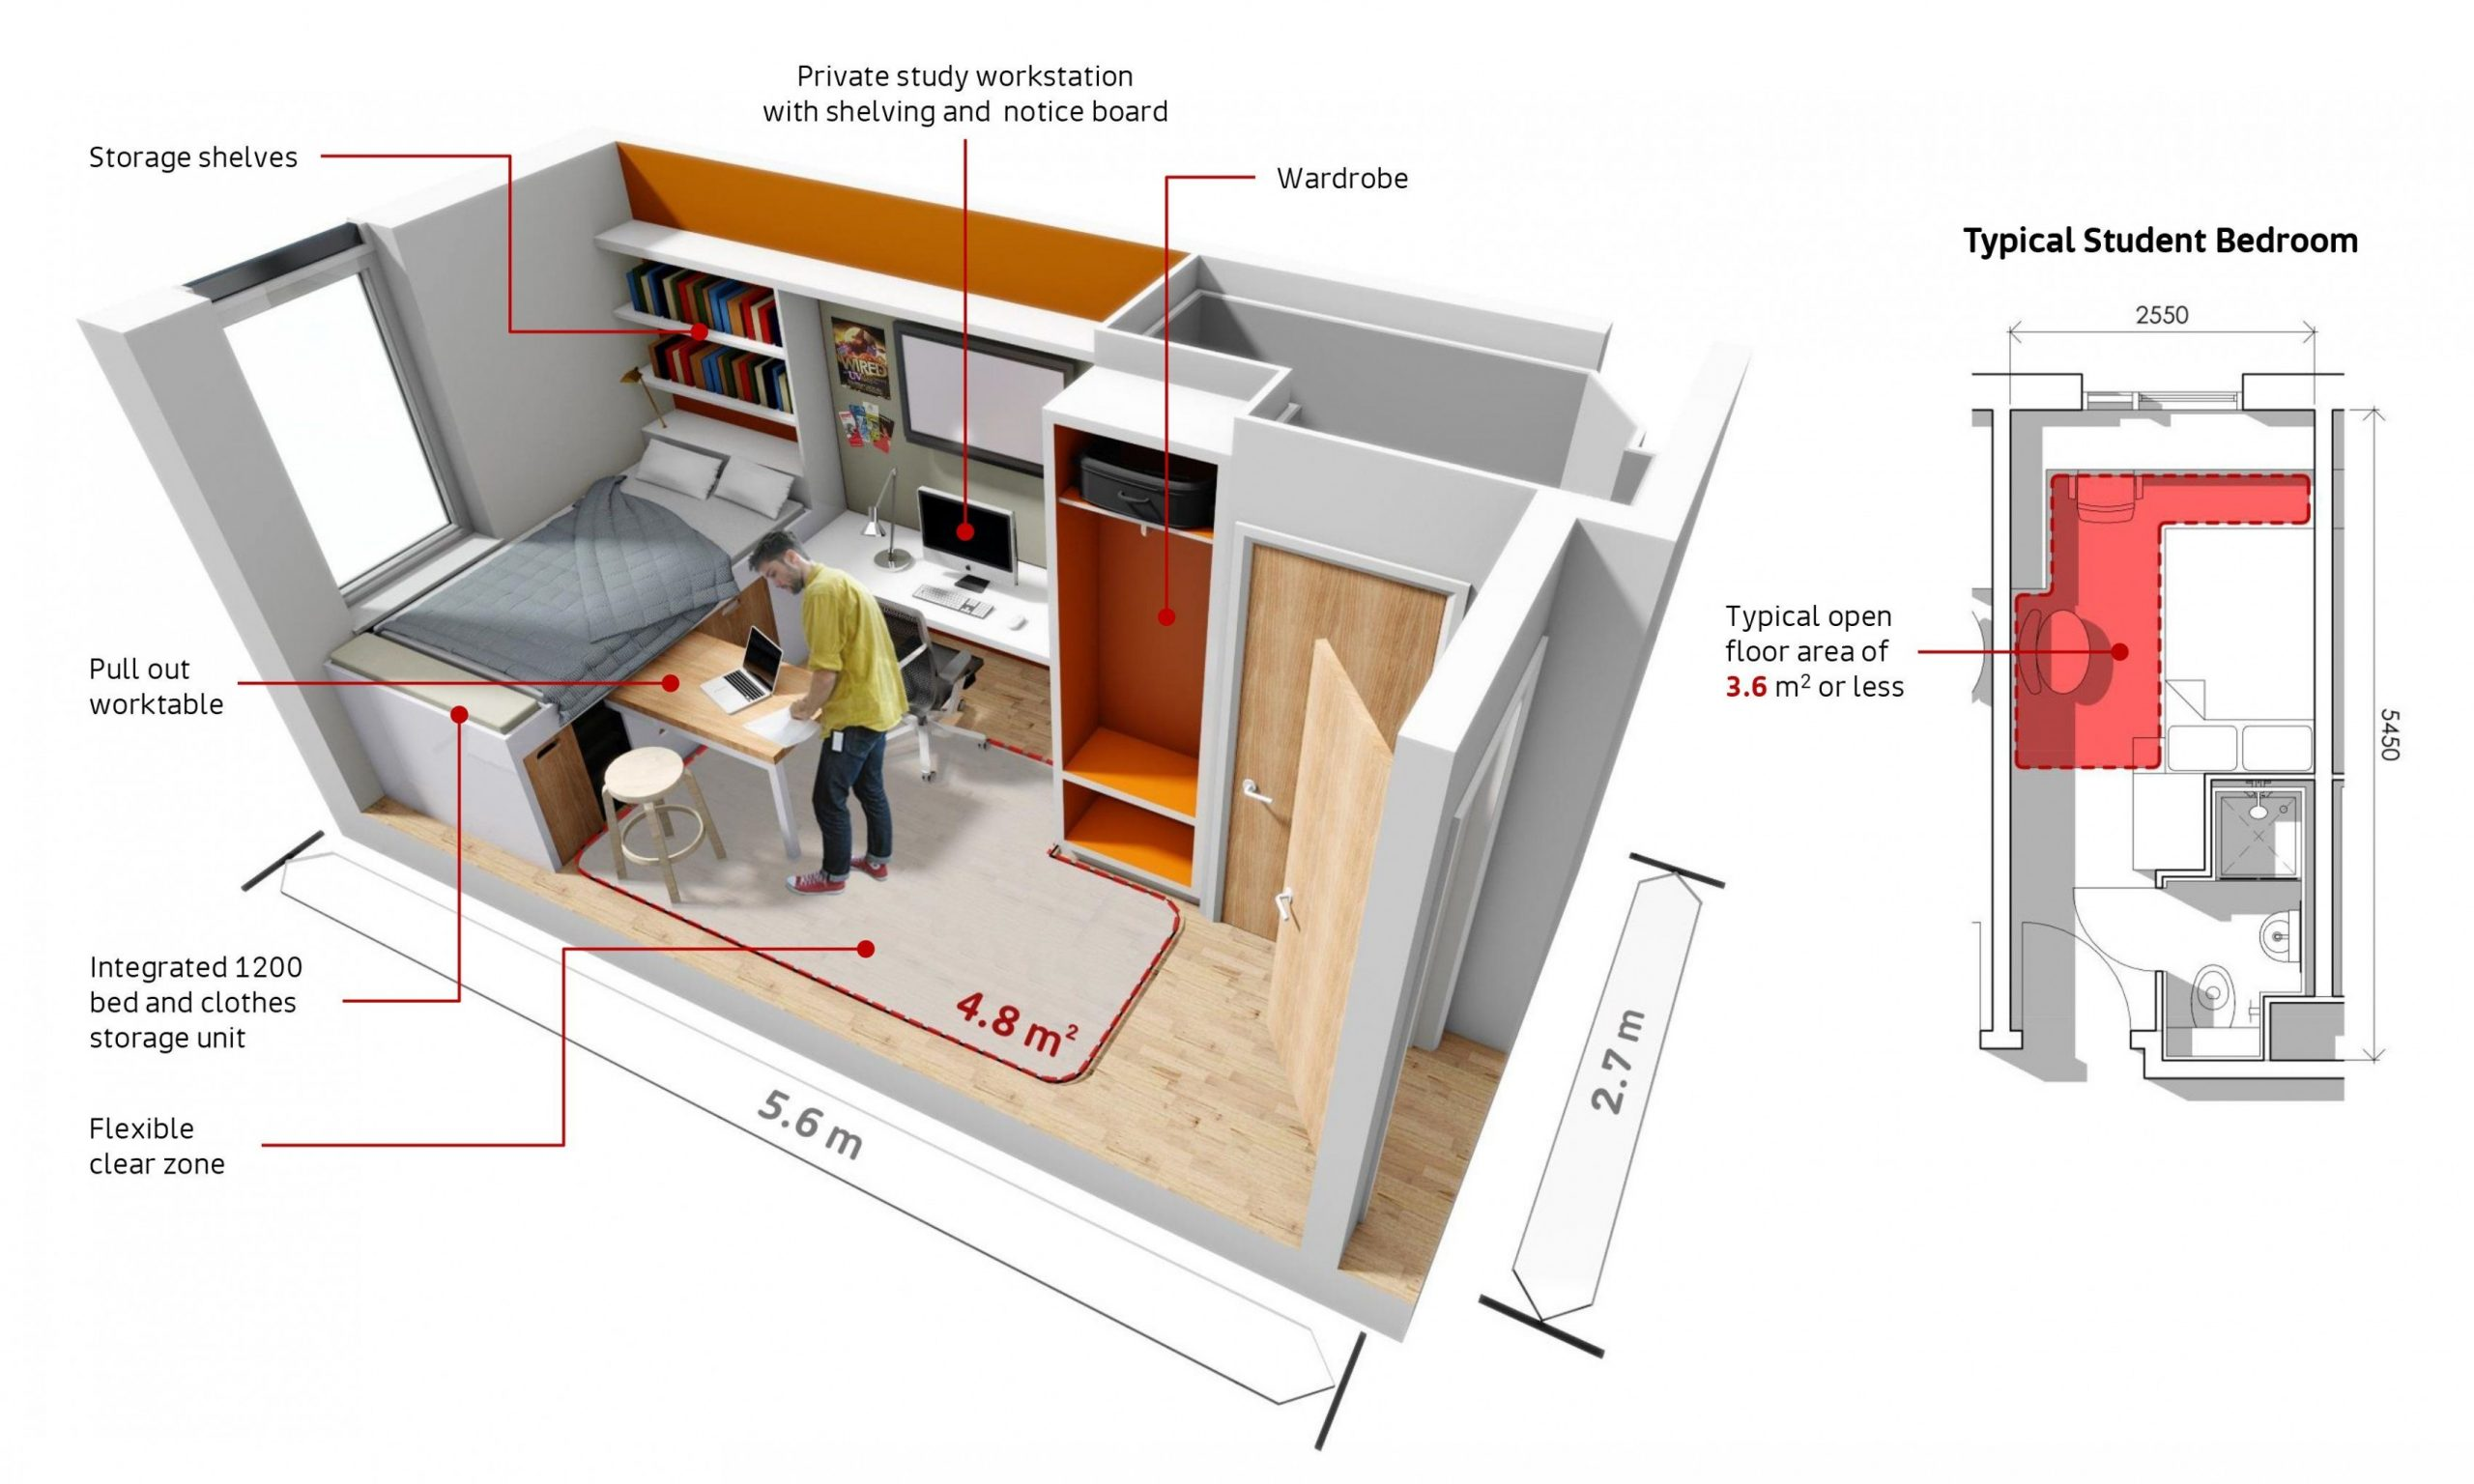 How to design the student bedrooms of the future  Student bedroom  - Apartment Unit Design